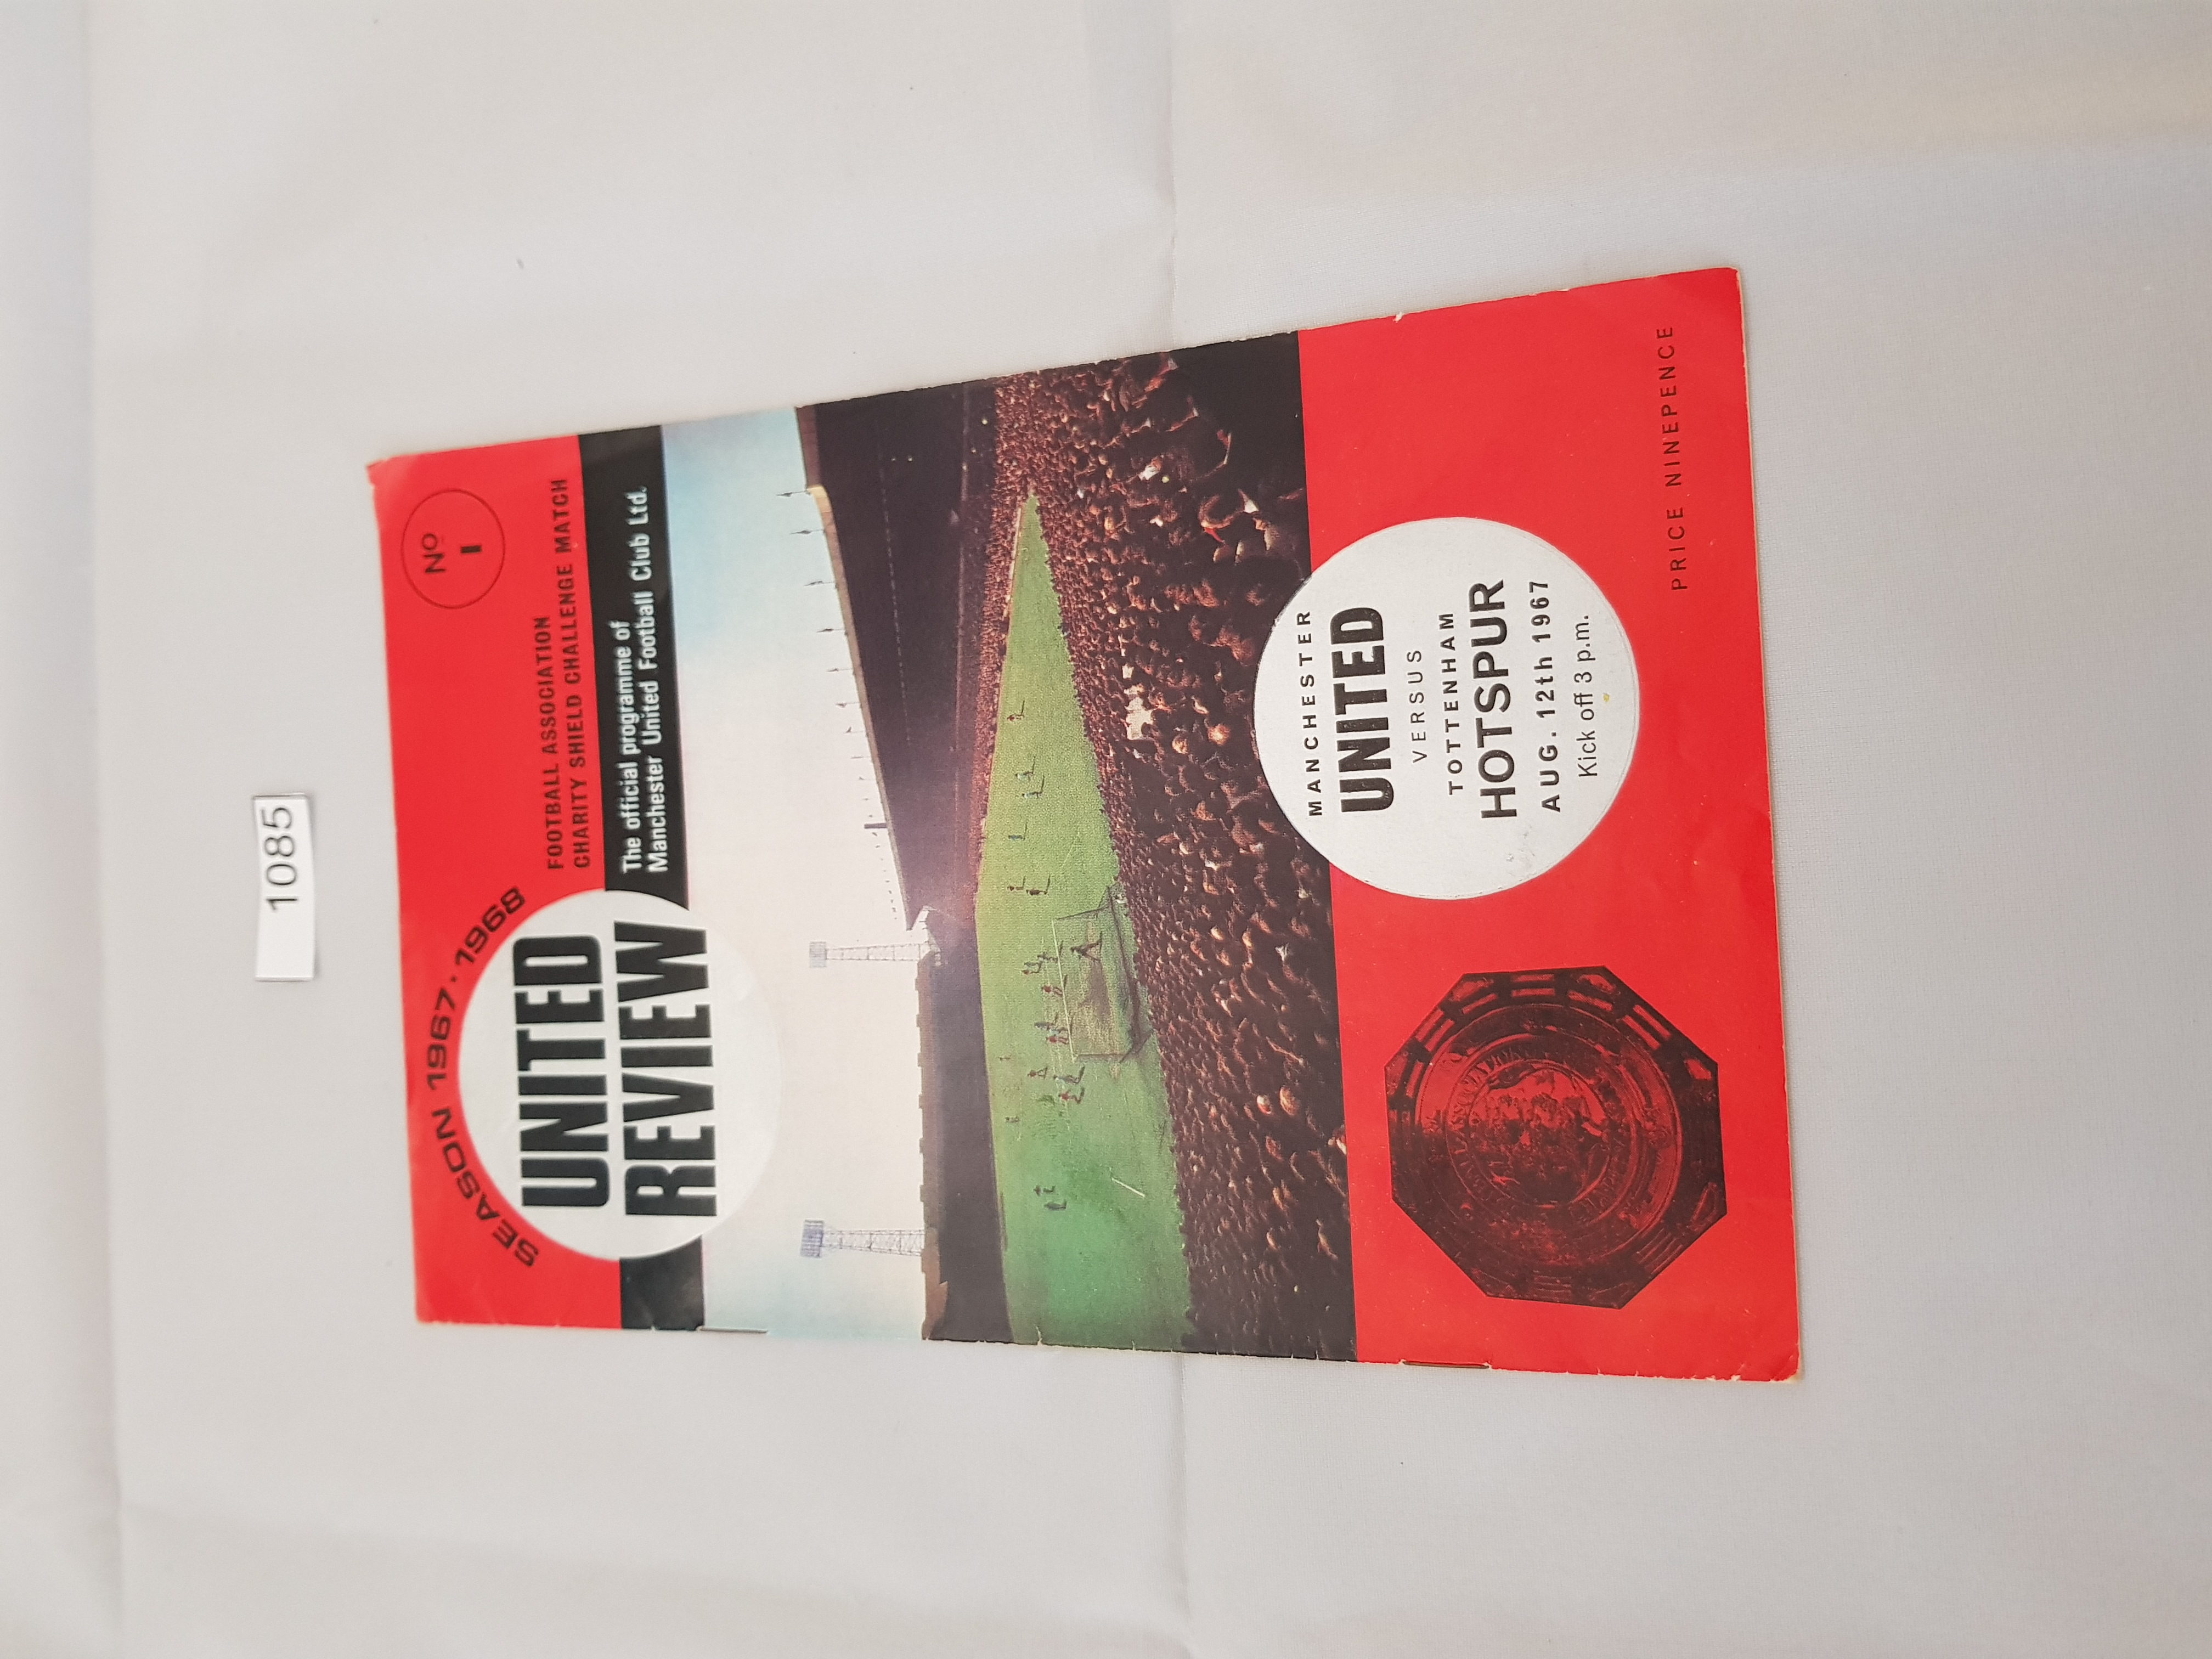 Manchester United v Tottenham Hotspurs 12th August 1967 (FA Charity Shield)